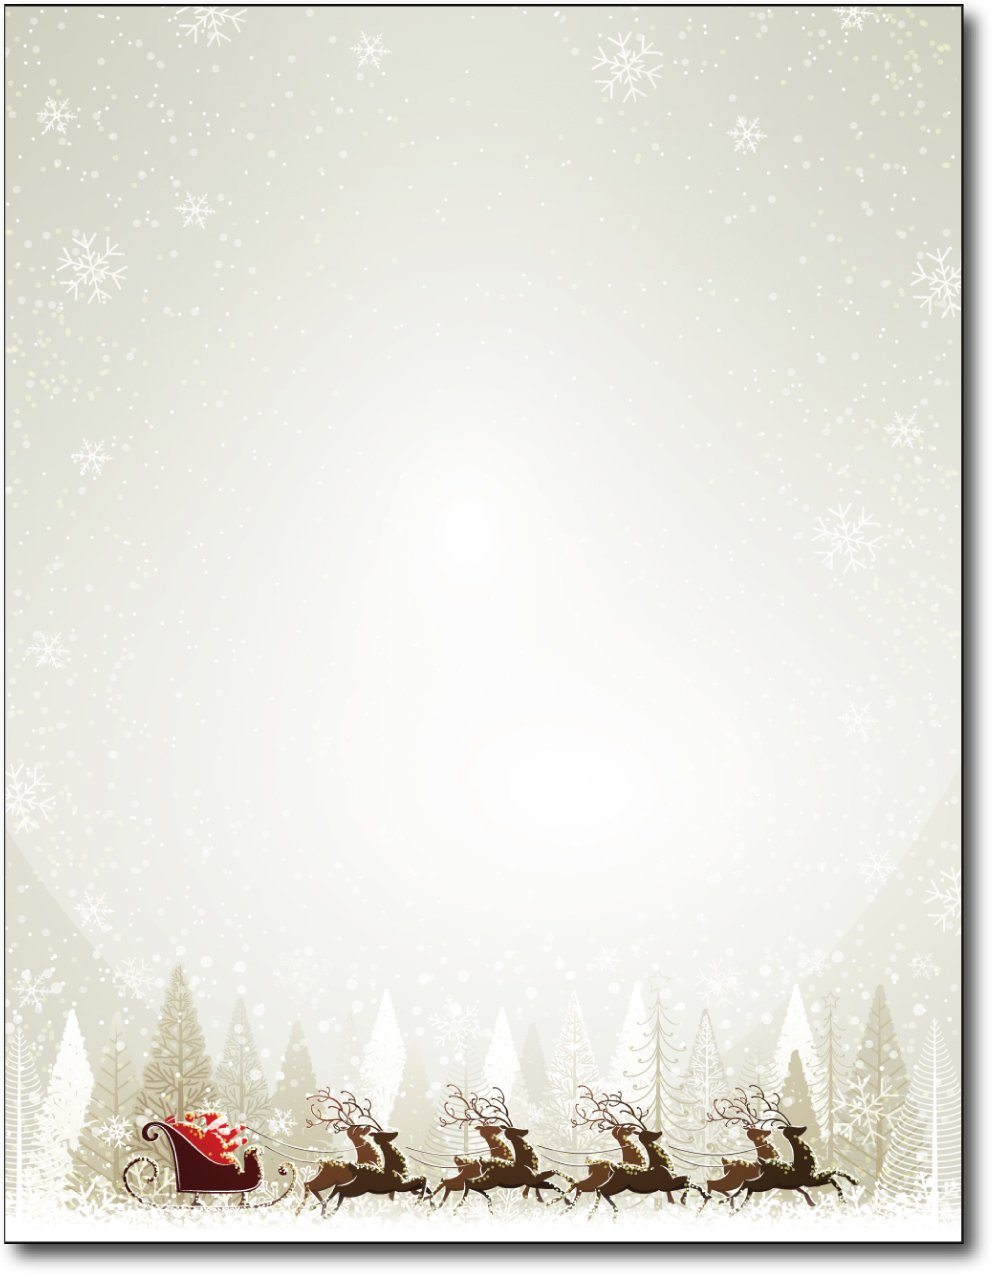 Santa & Reindeer Christmas Paper - 80 Sheets by Desktop Publishing Supplies, Inc.